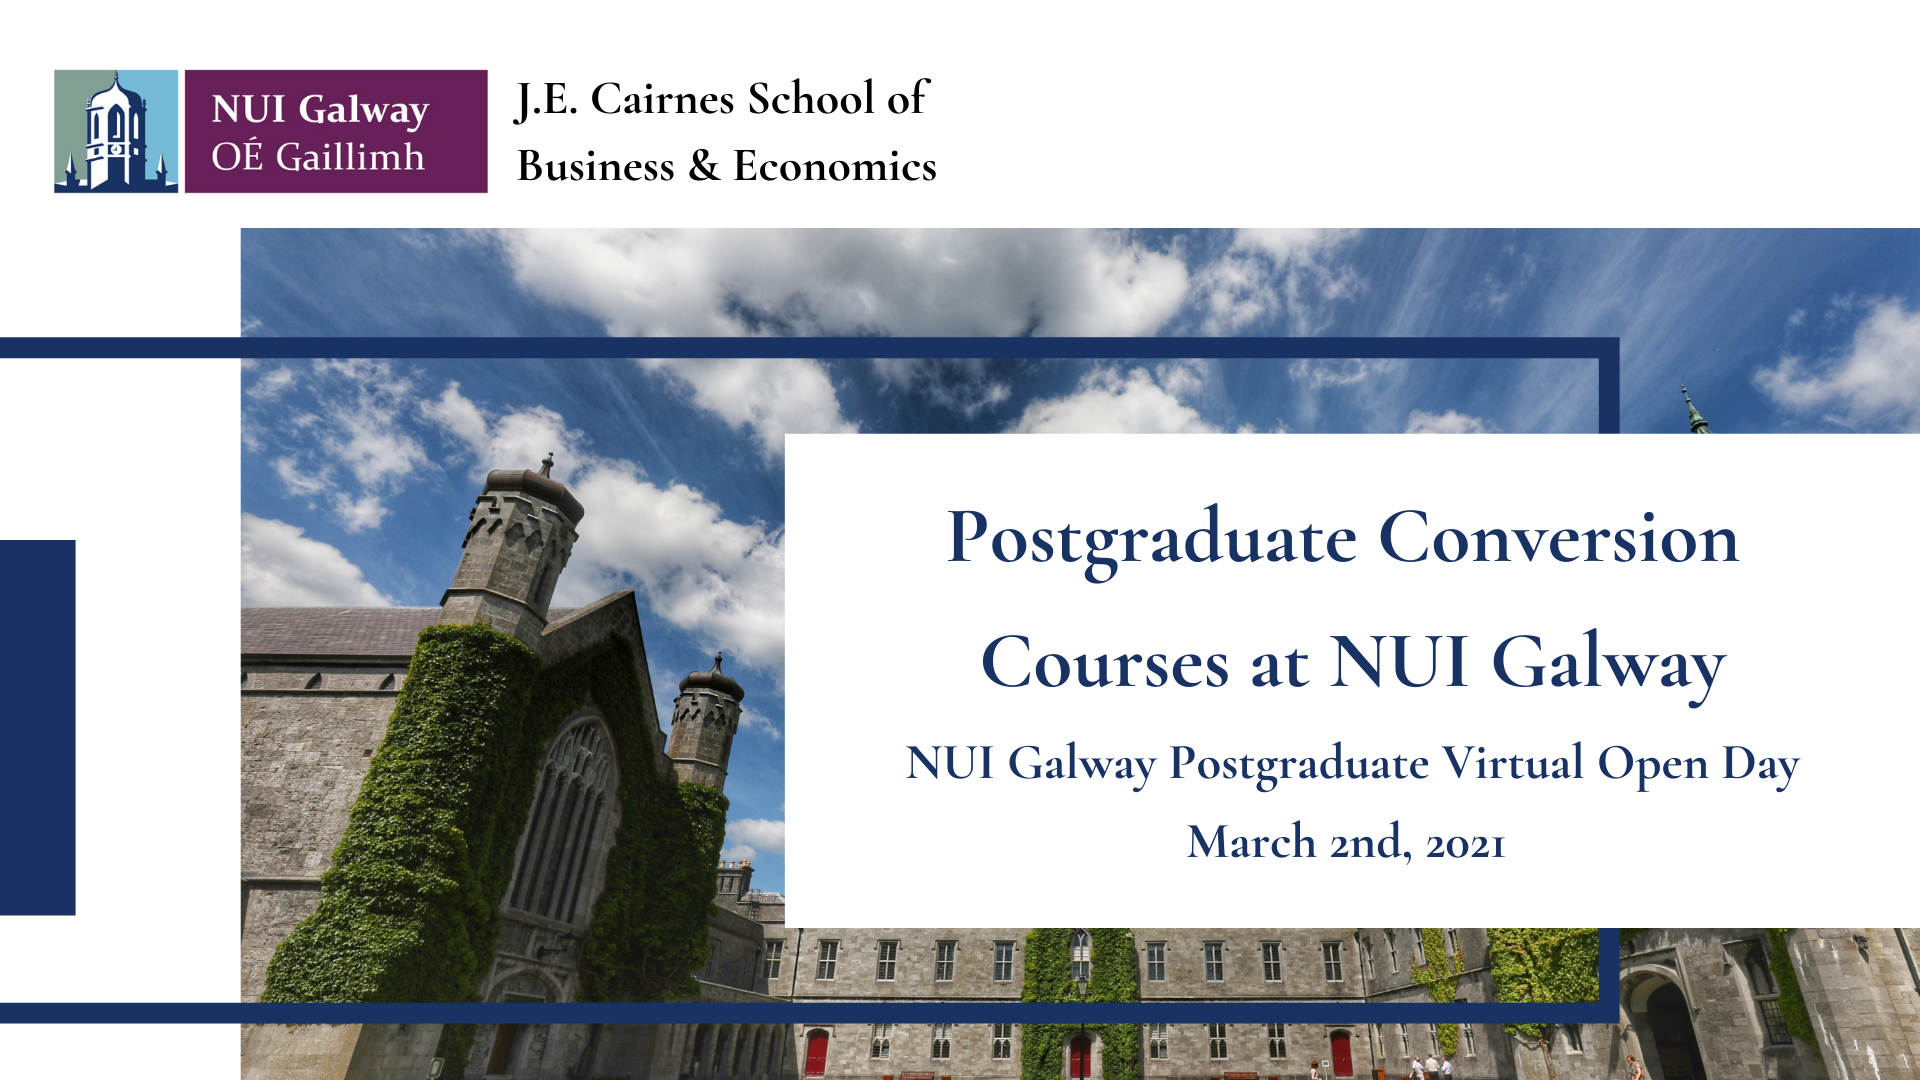 Postgraduate Conversion Courses Virtual Open Day March 2021